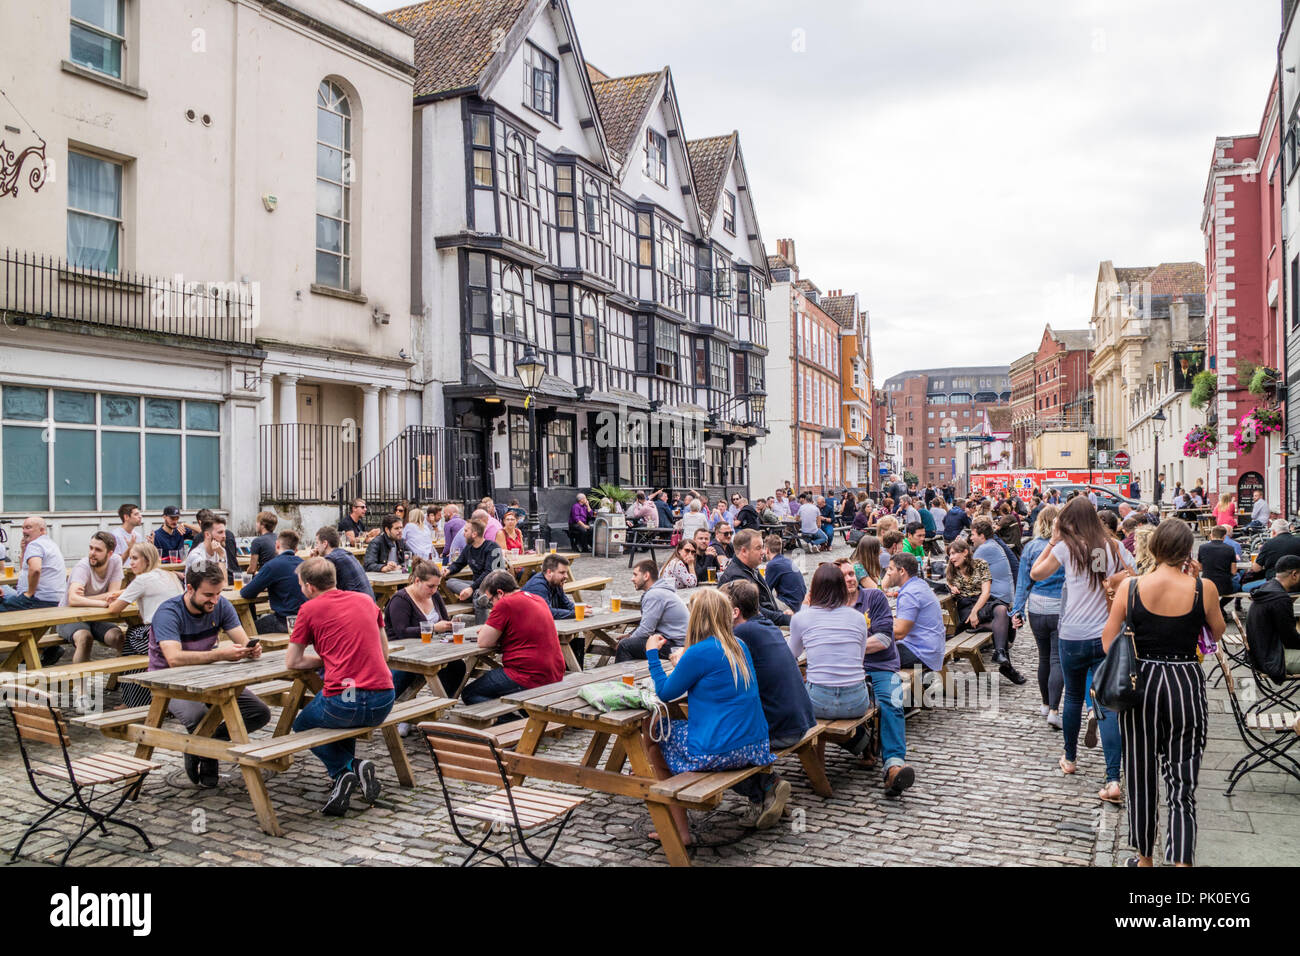 People relaxing at a pub in King Street in the city of Bristol, England, UK - Stock Image